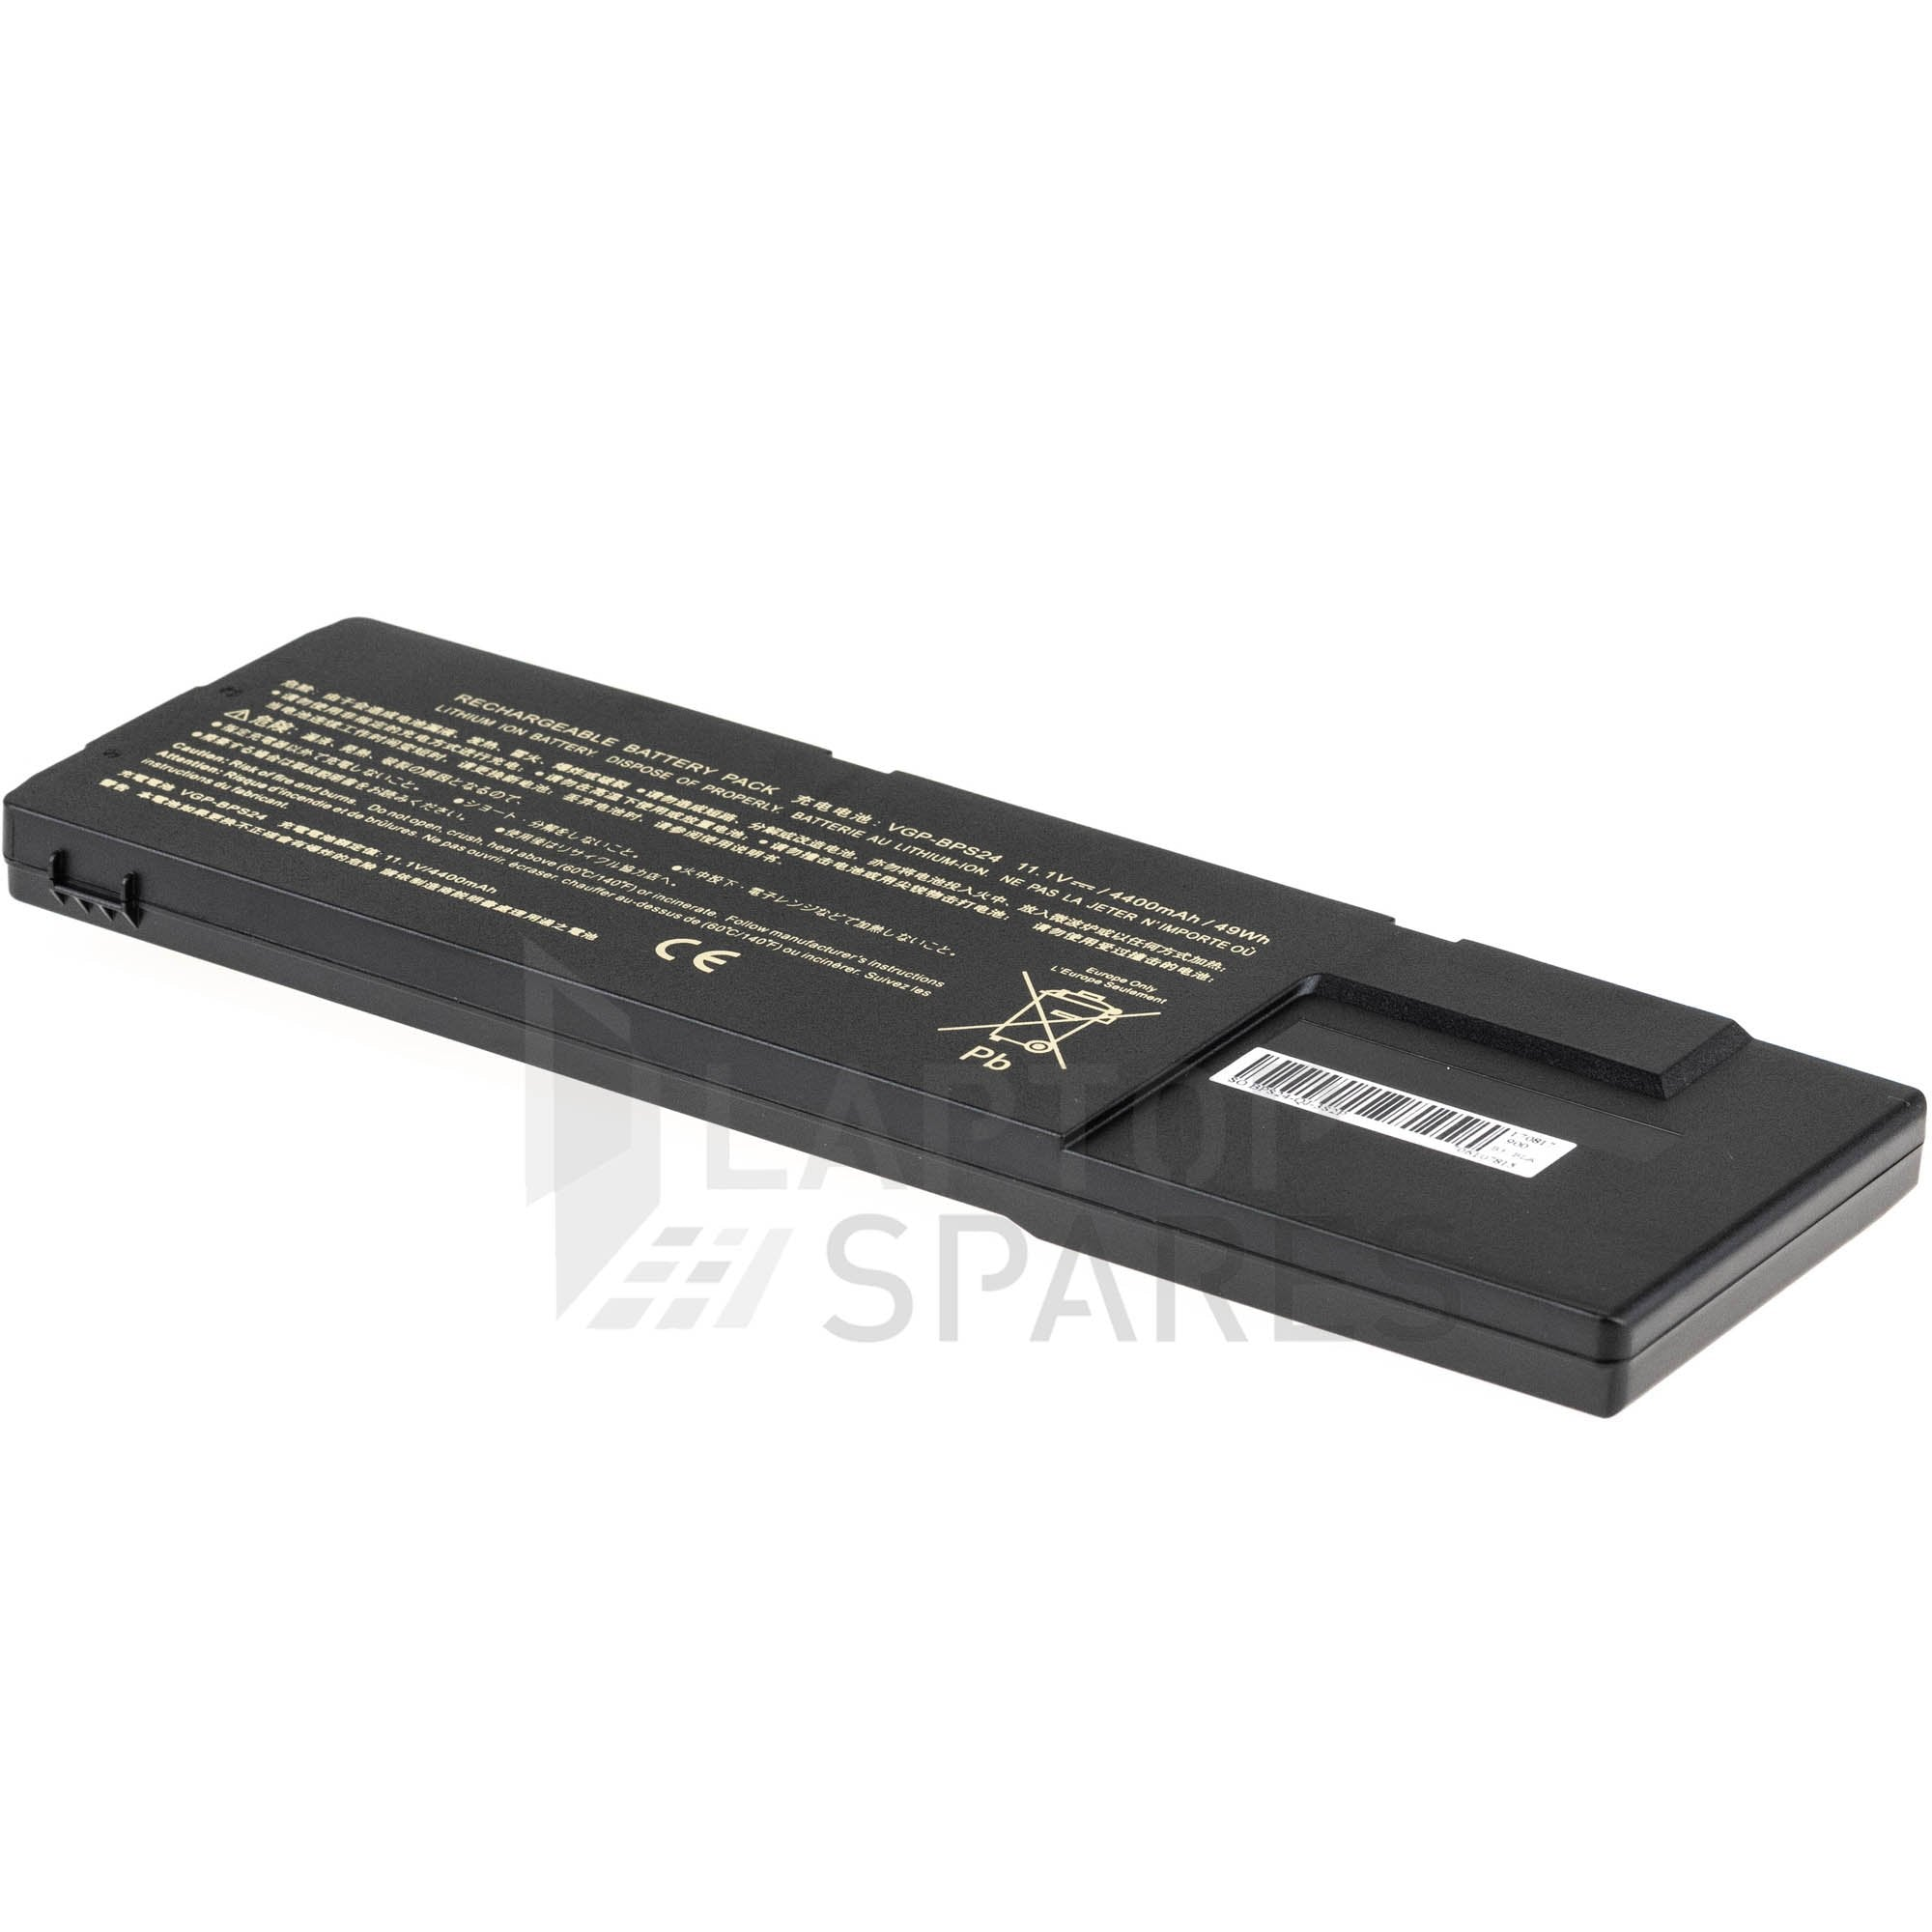 Sony Vaio VPC SB18FJ/P SB18FJ/W 4400mAh 6 Cell Battery